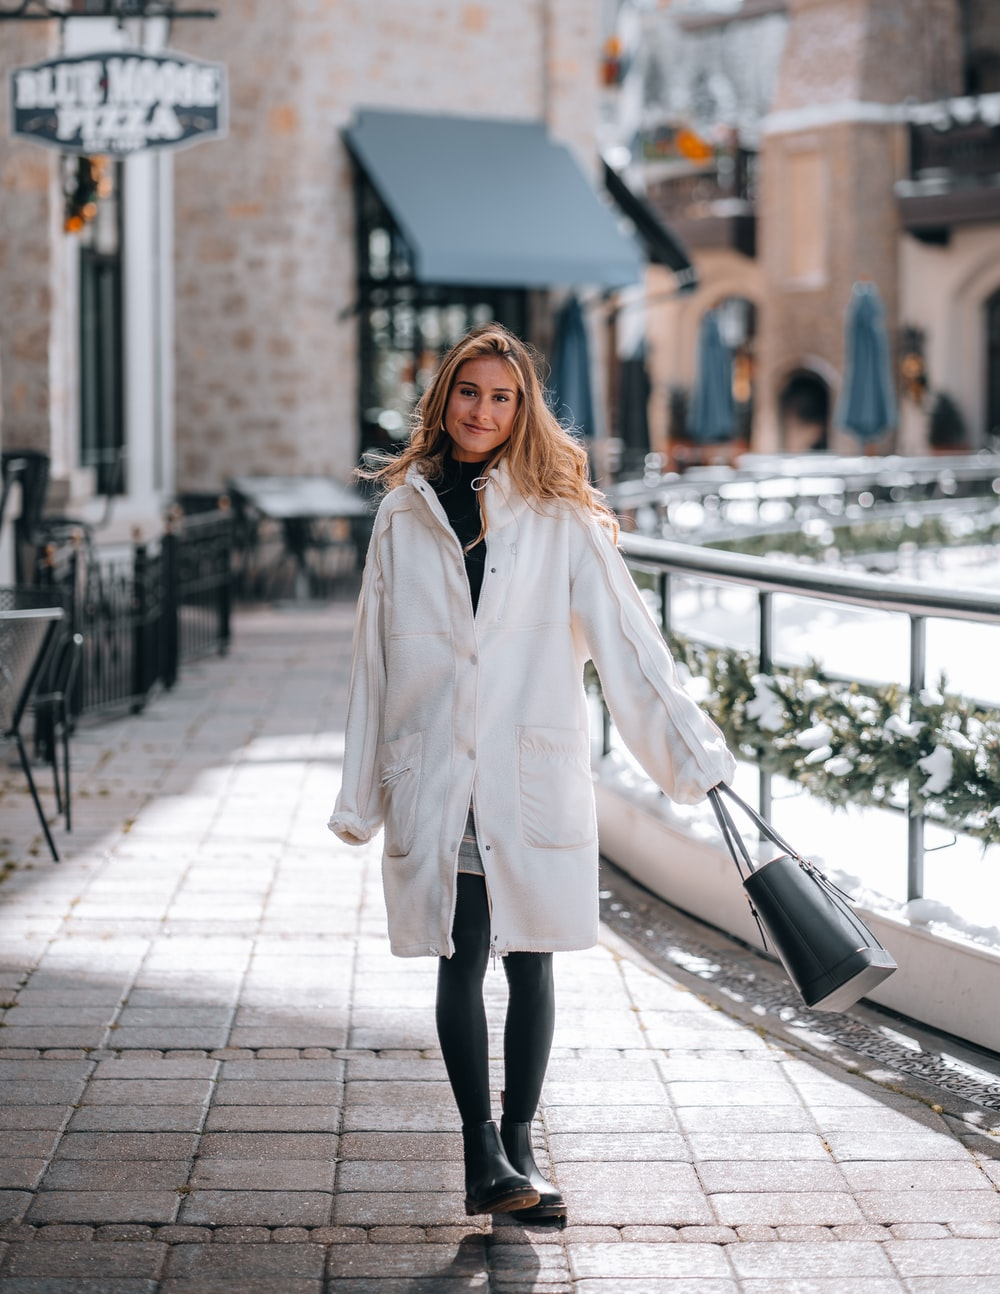 woman in white coat standing on sidewalk during daytime